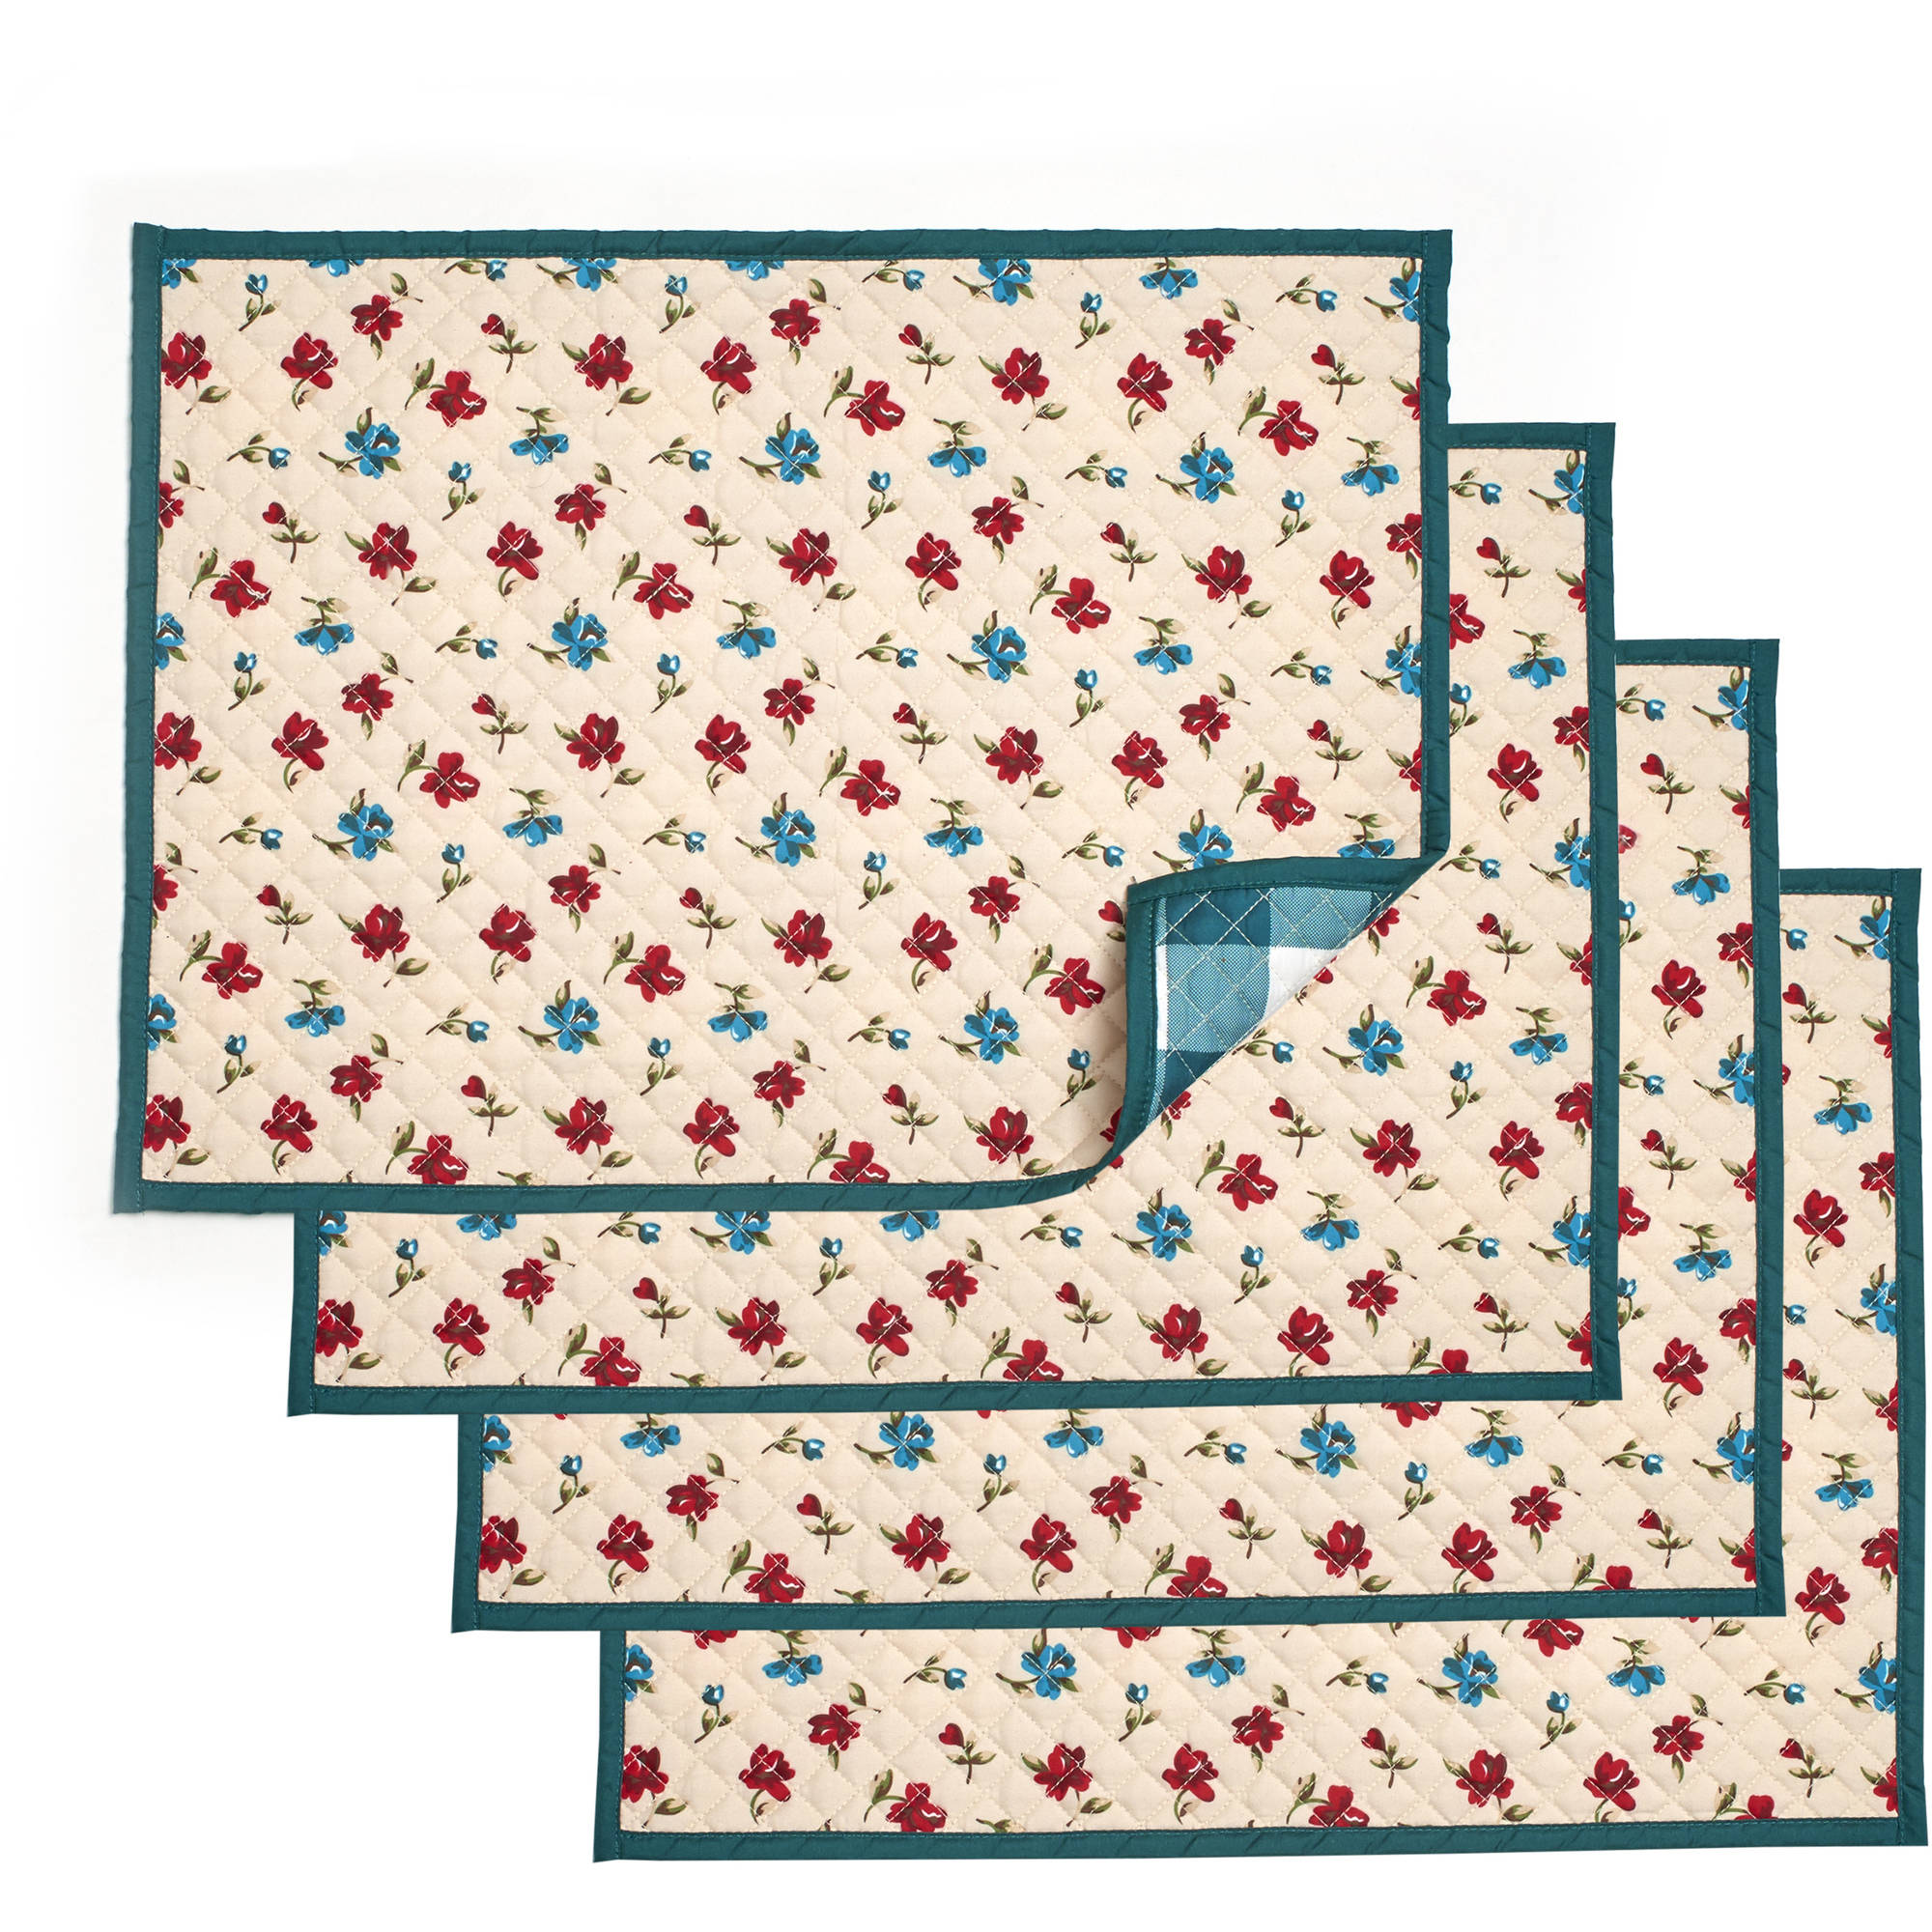 Pioneer Woman Posies Reversible Placemats, Pack of 4